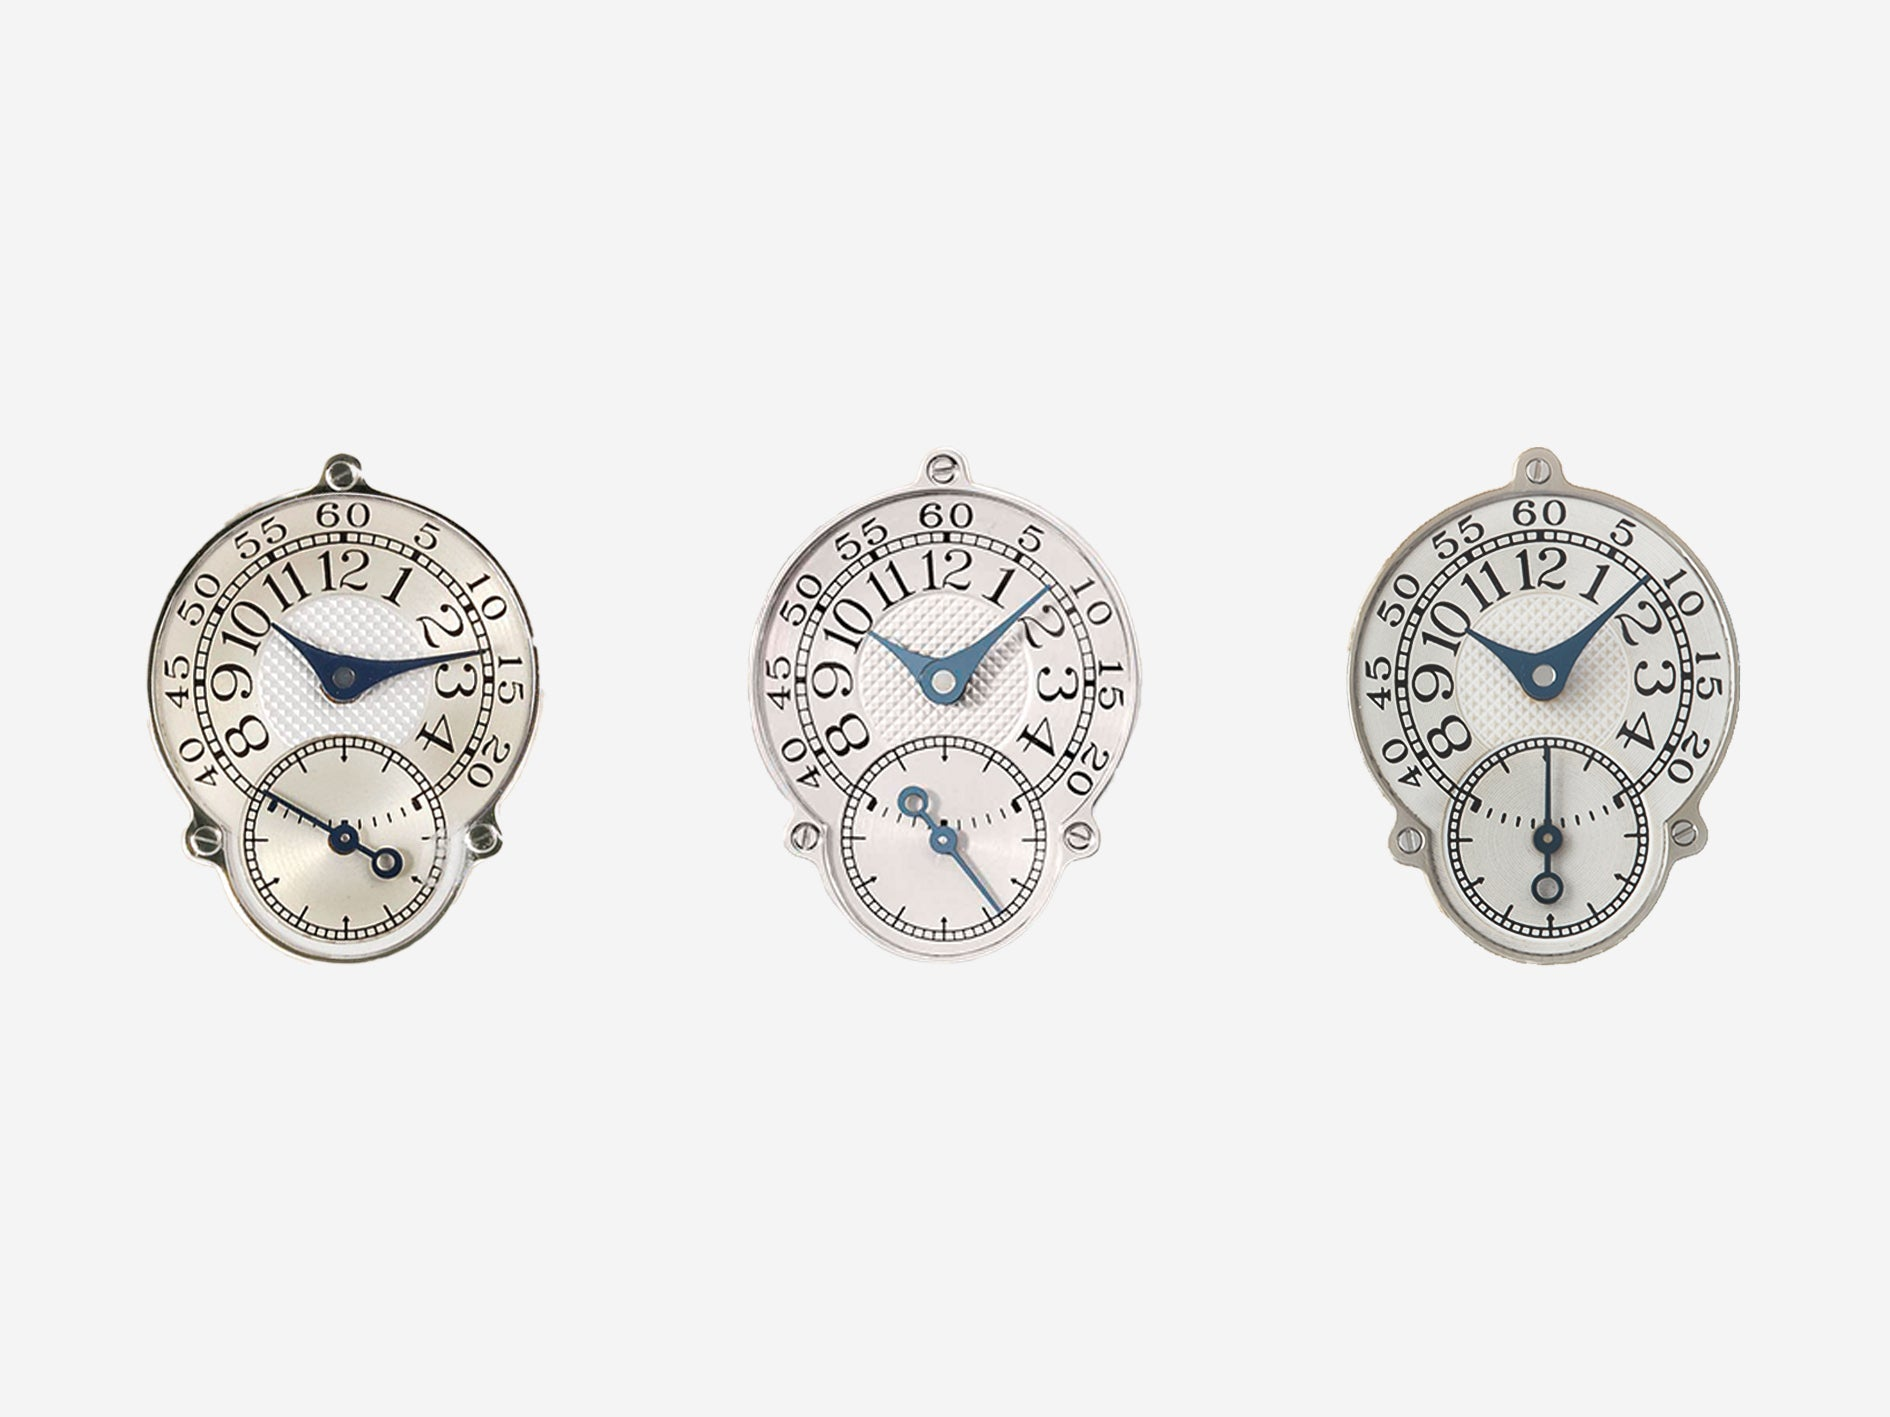 Three styles of F.P. Journe Resonance sub-dails